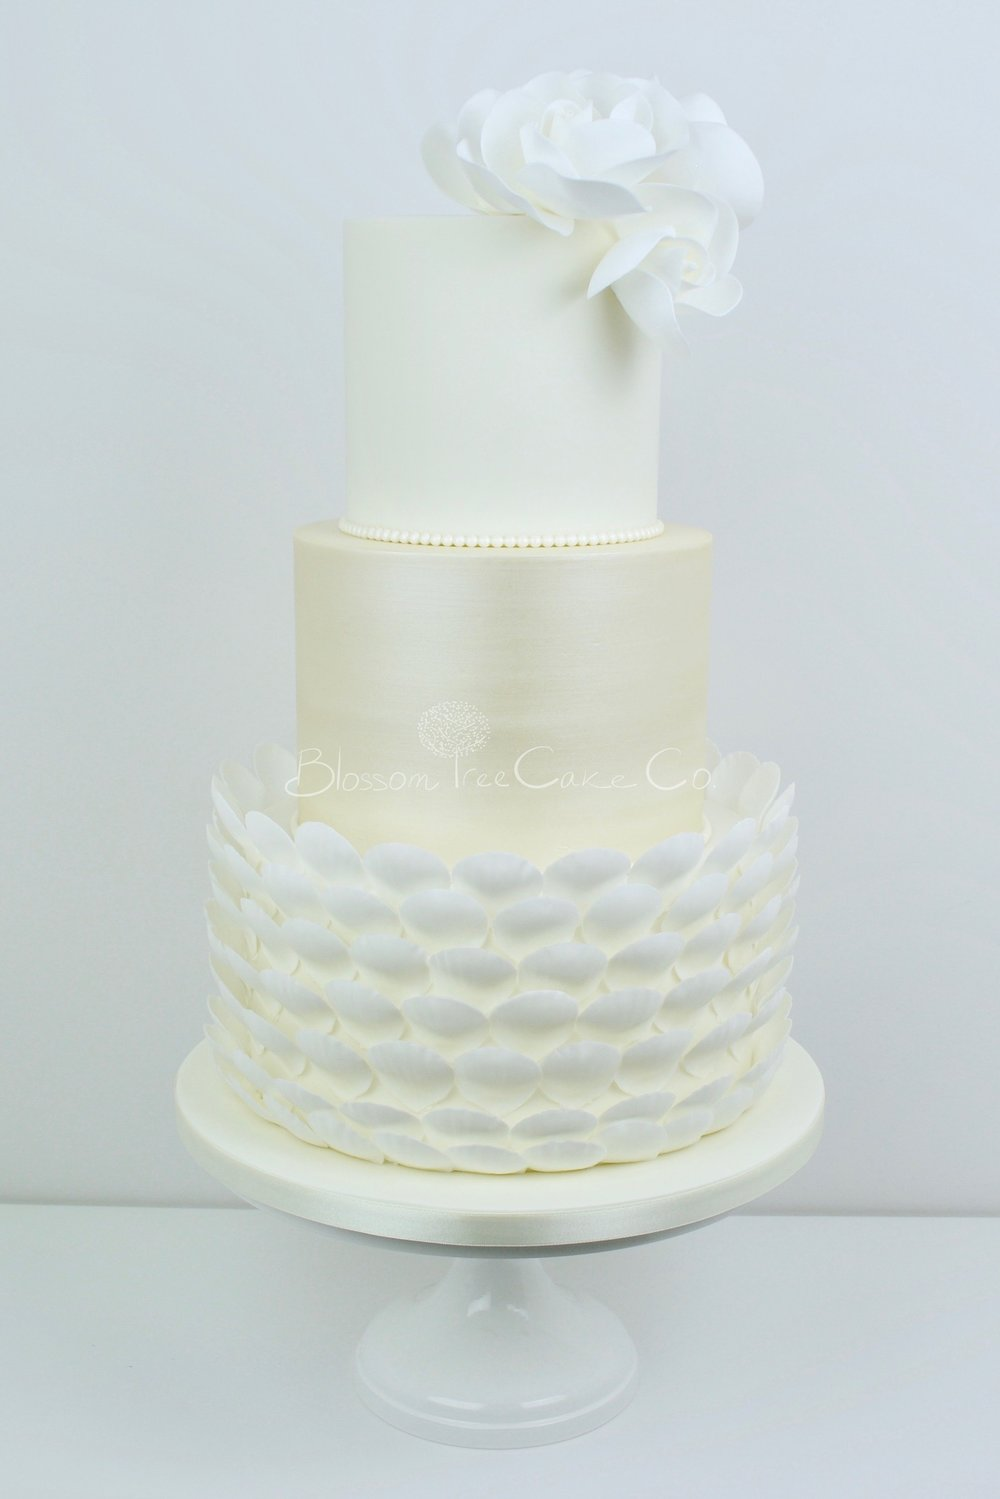 White Roses with Pearls wedding cake by Blossom Tree Cake Company Harrogate North Yorkshire